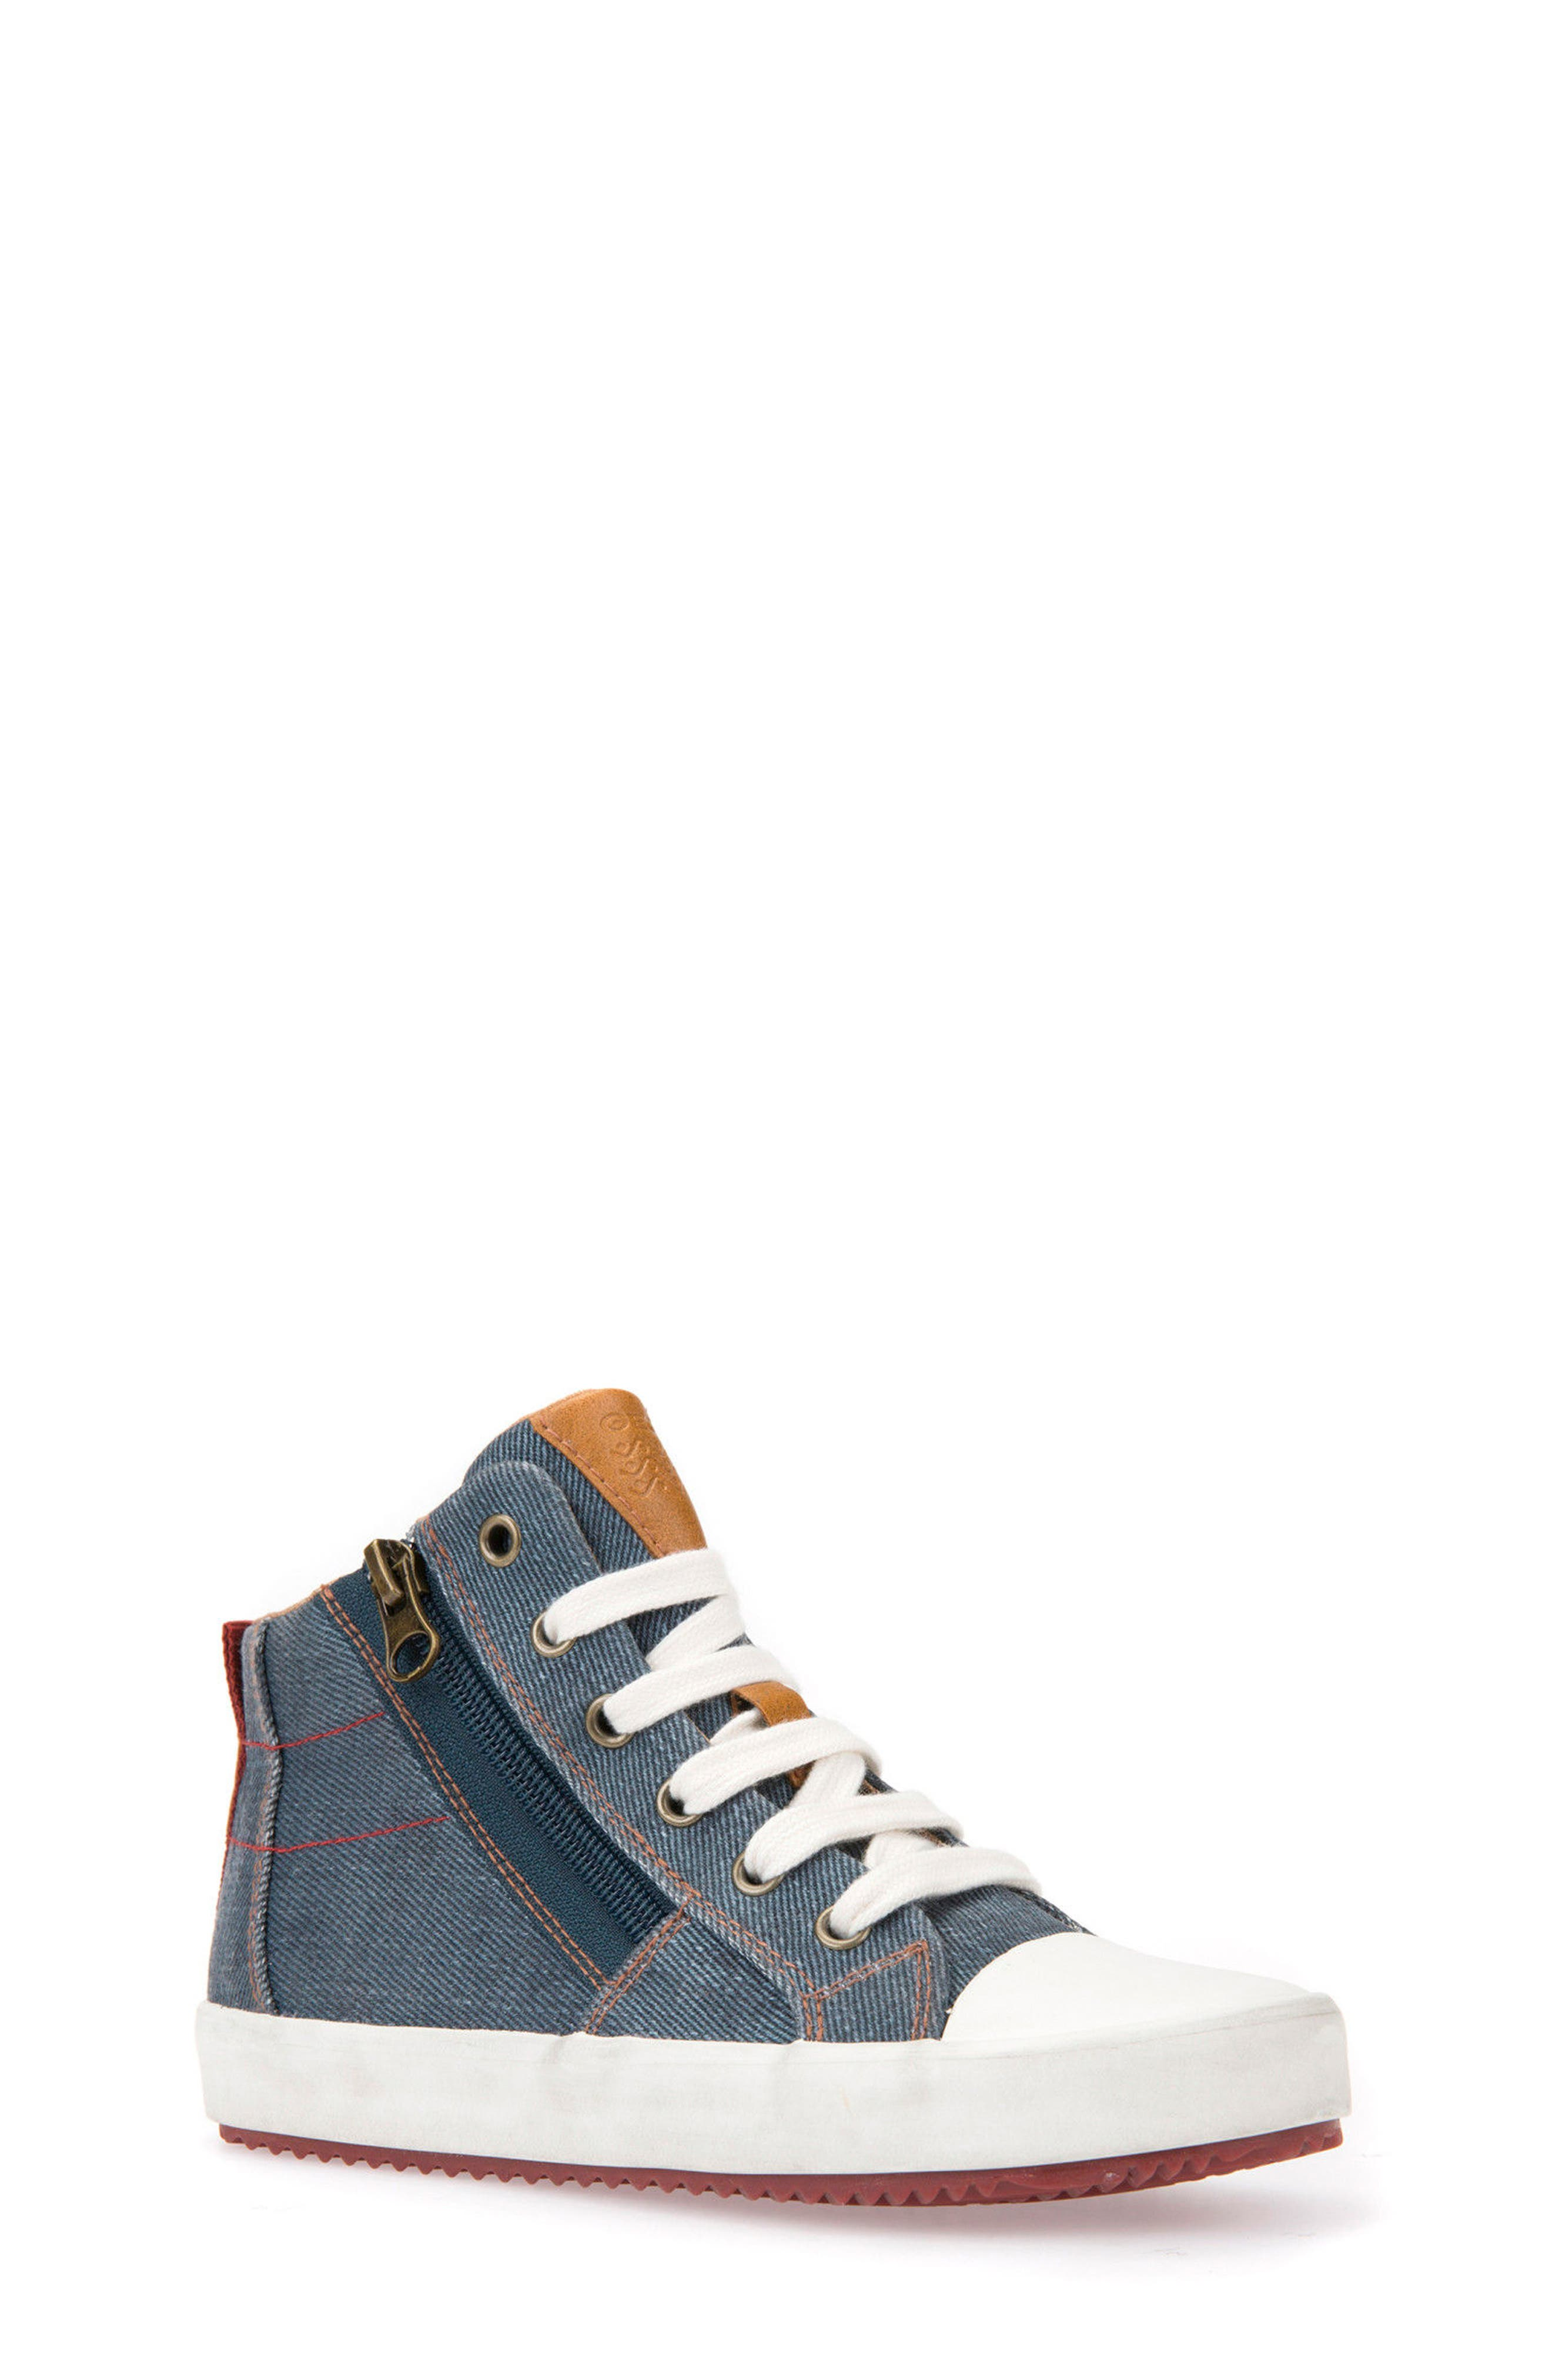 Alonisso High Top Sneaker,                         Main,                         color, Blue/ Dark Red